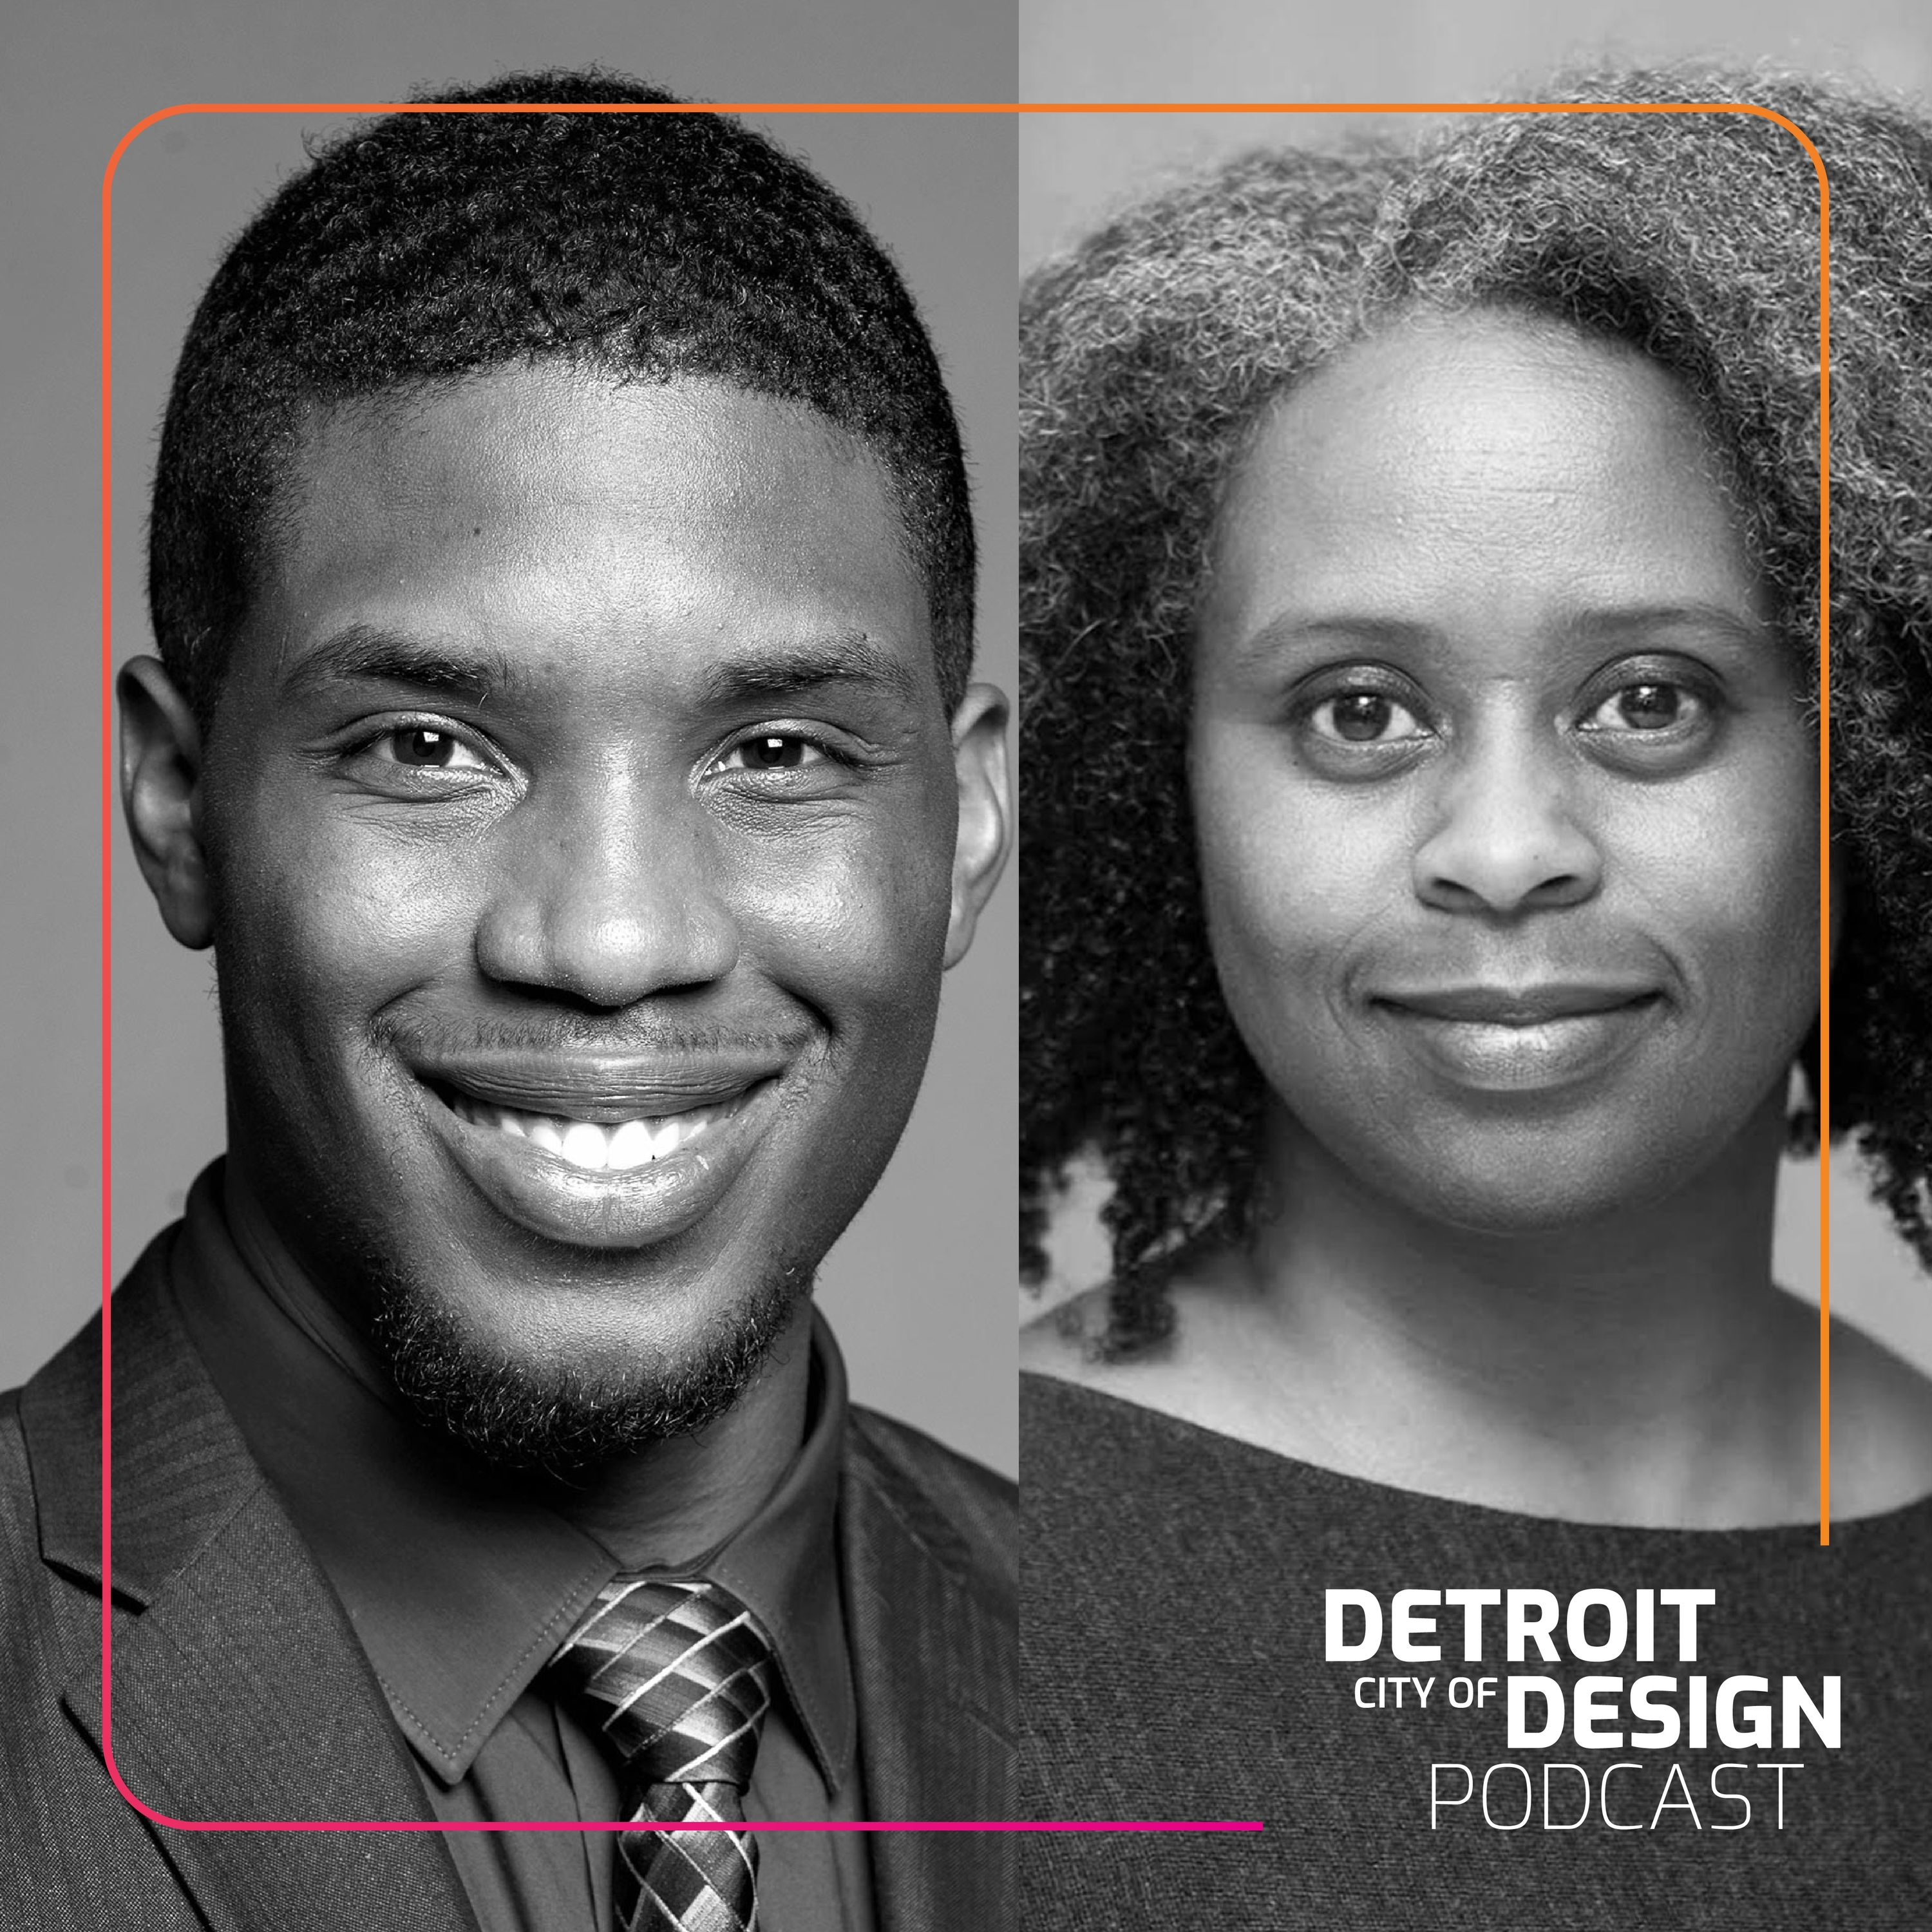 Joshua Edmonds and Cézanne Charles on the intersection of design and community technology